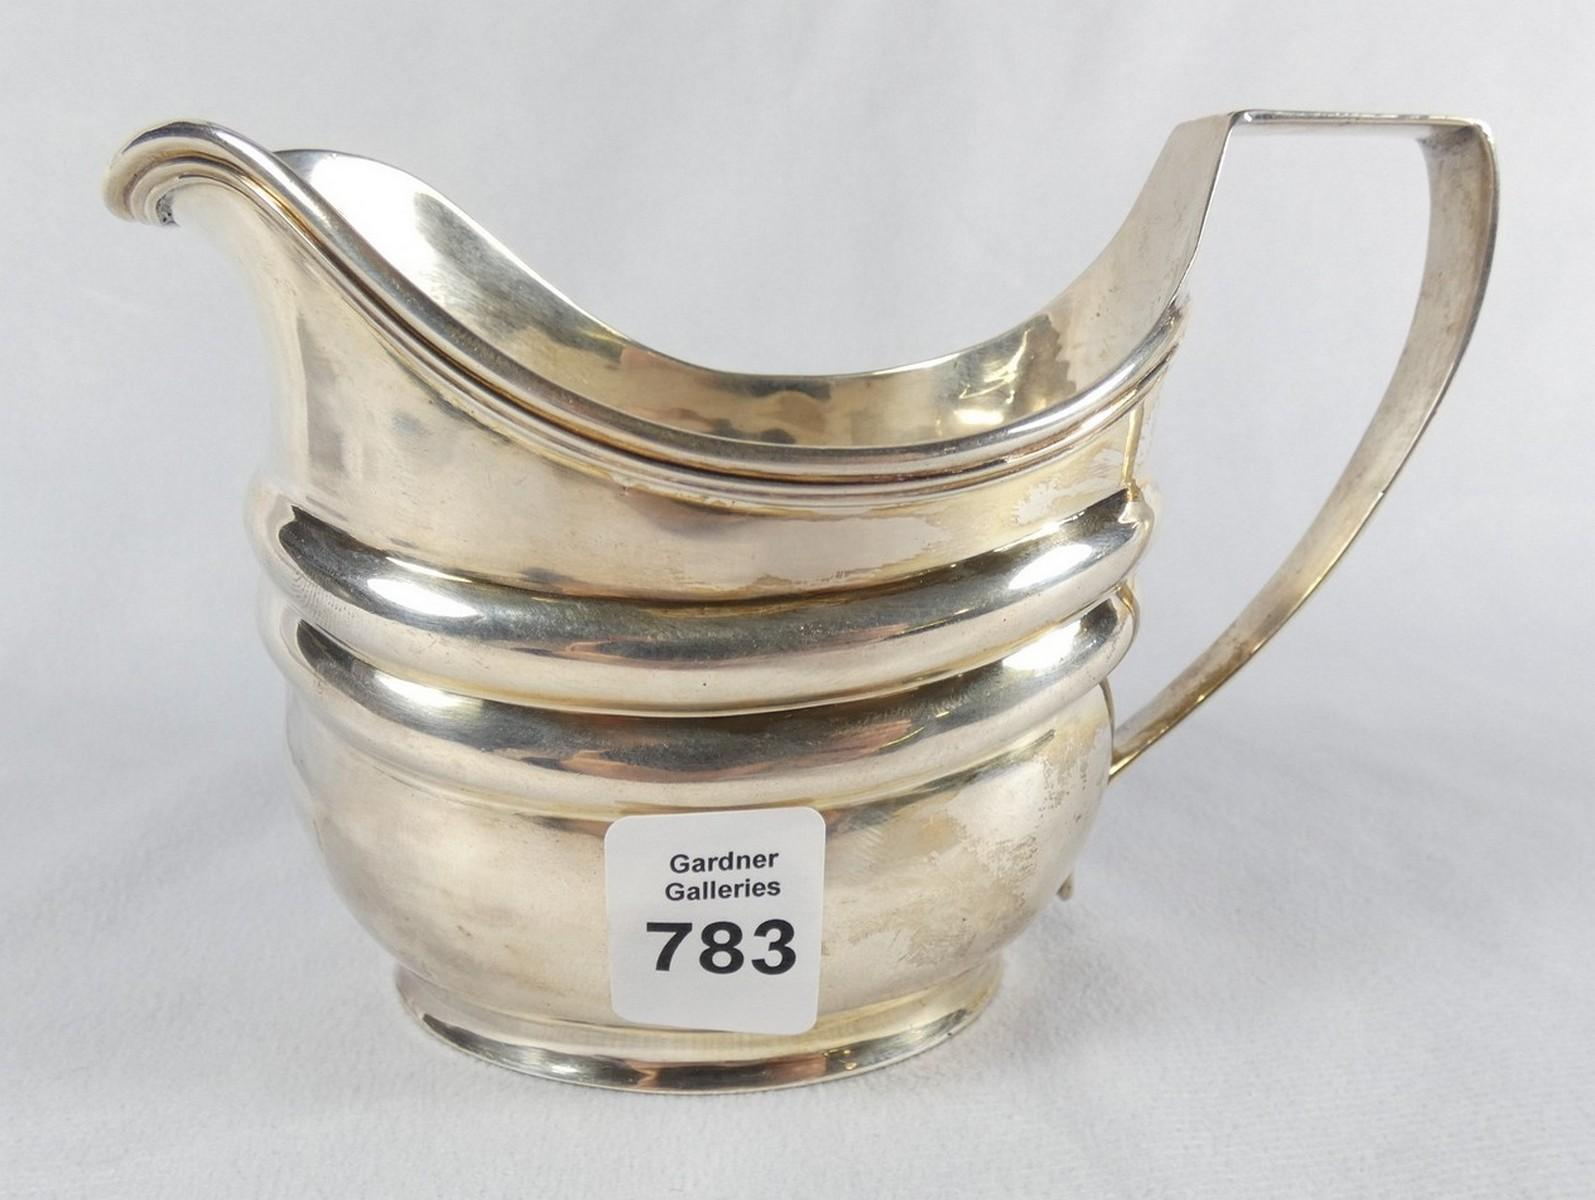 TWO SILVERPLATED ENTREE DISHES